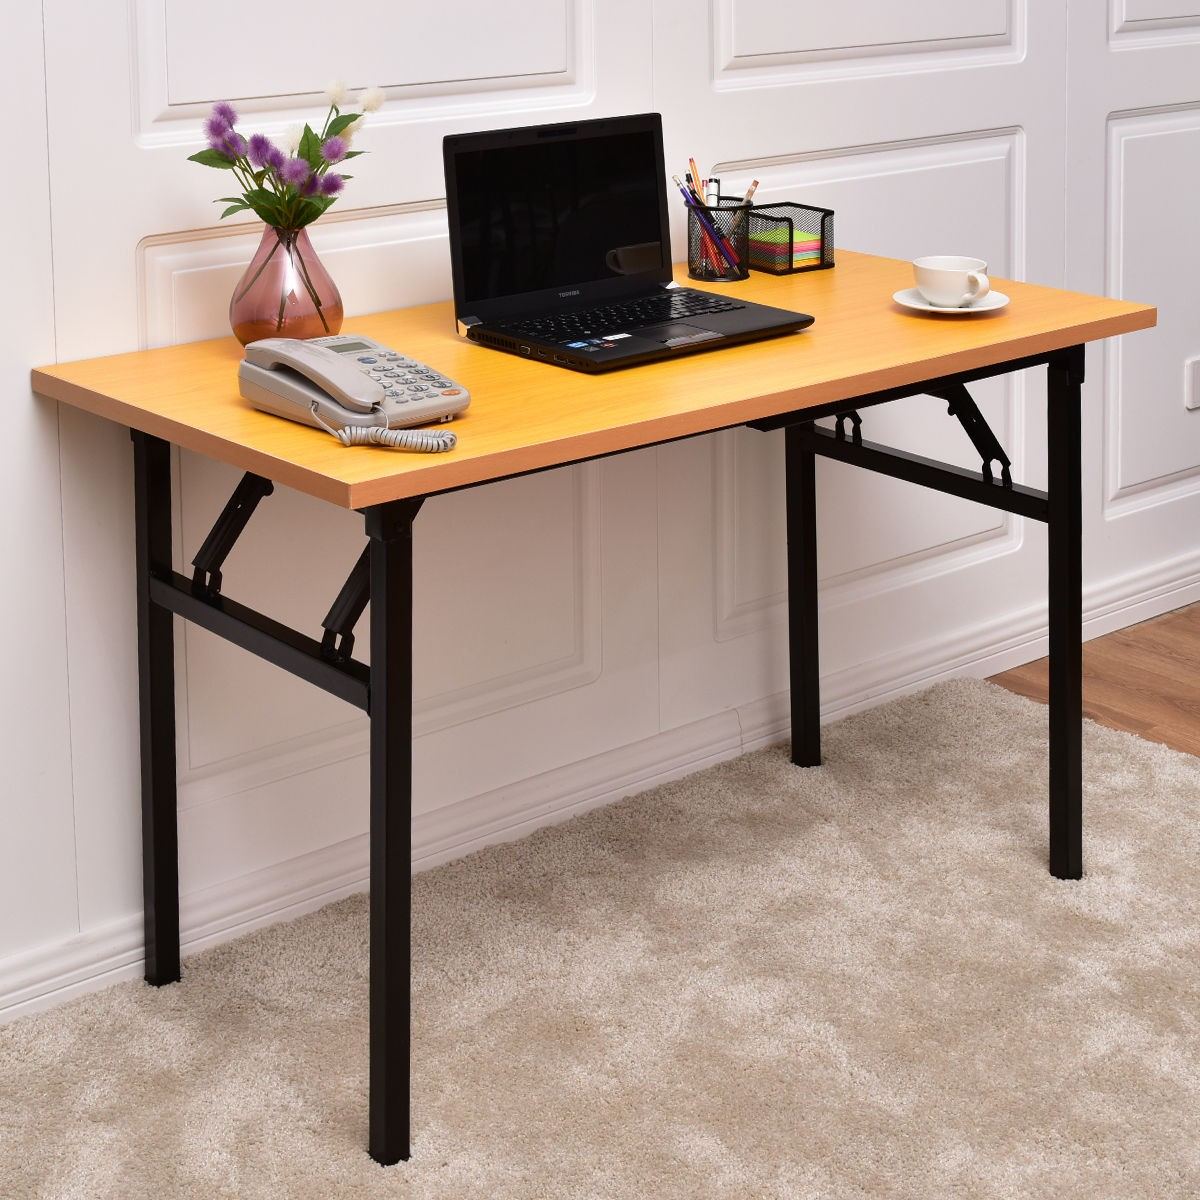 Details about modern home office folding workstation pc computer table desk furniture durable